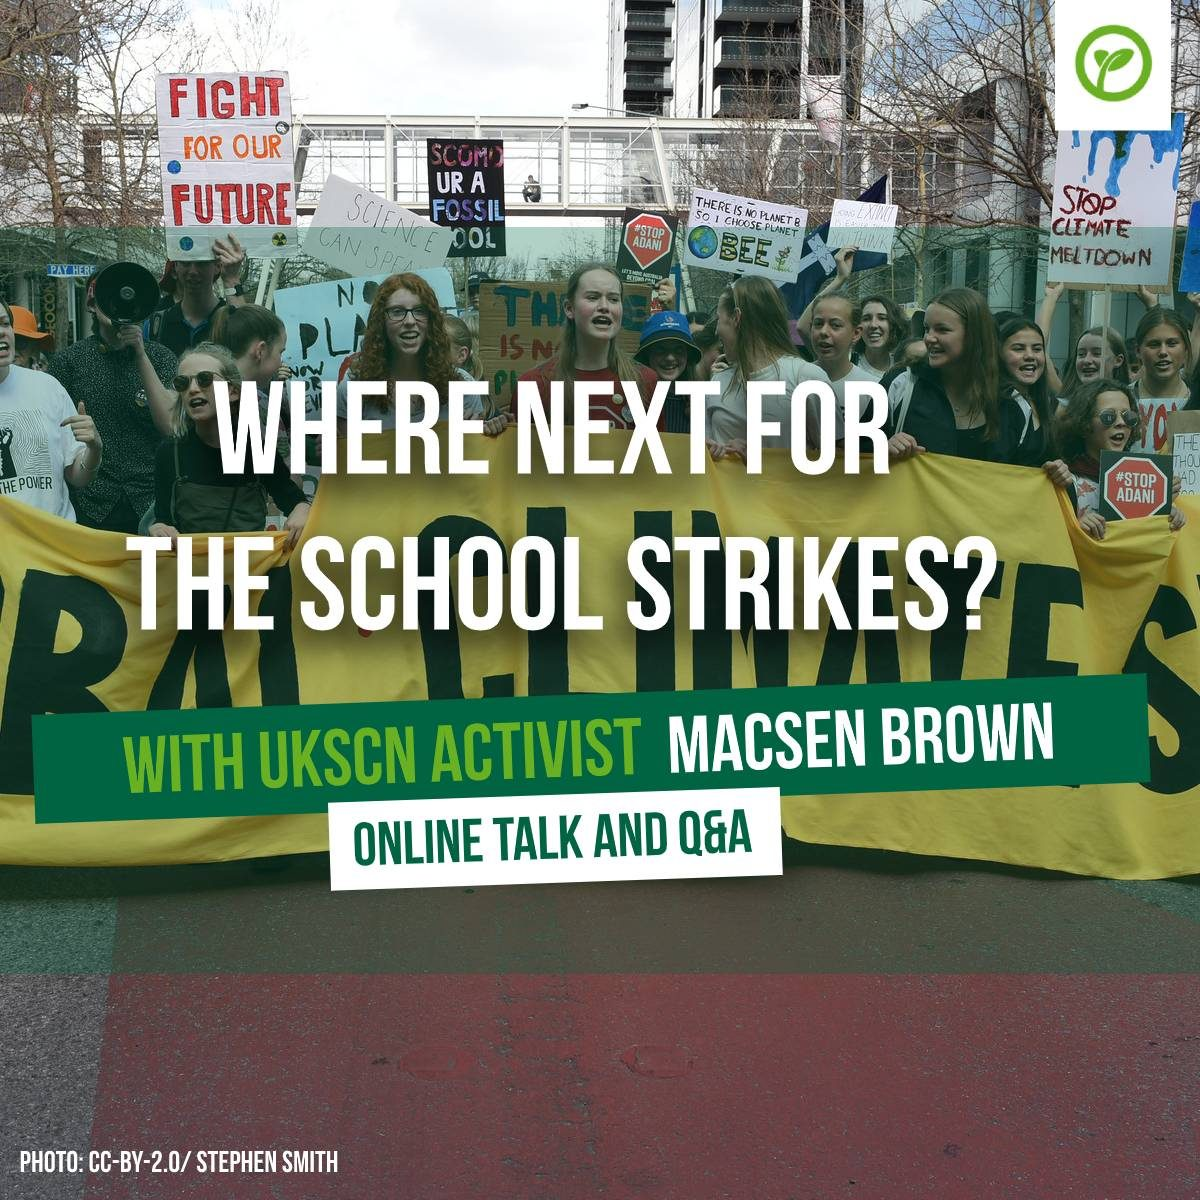 Where next for the school strikes? With UKSCN activist Macsen Brown. Online talk and Q&A. Photo: CC-BY-2.0/Stephen Smith